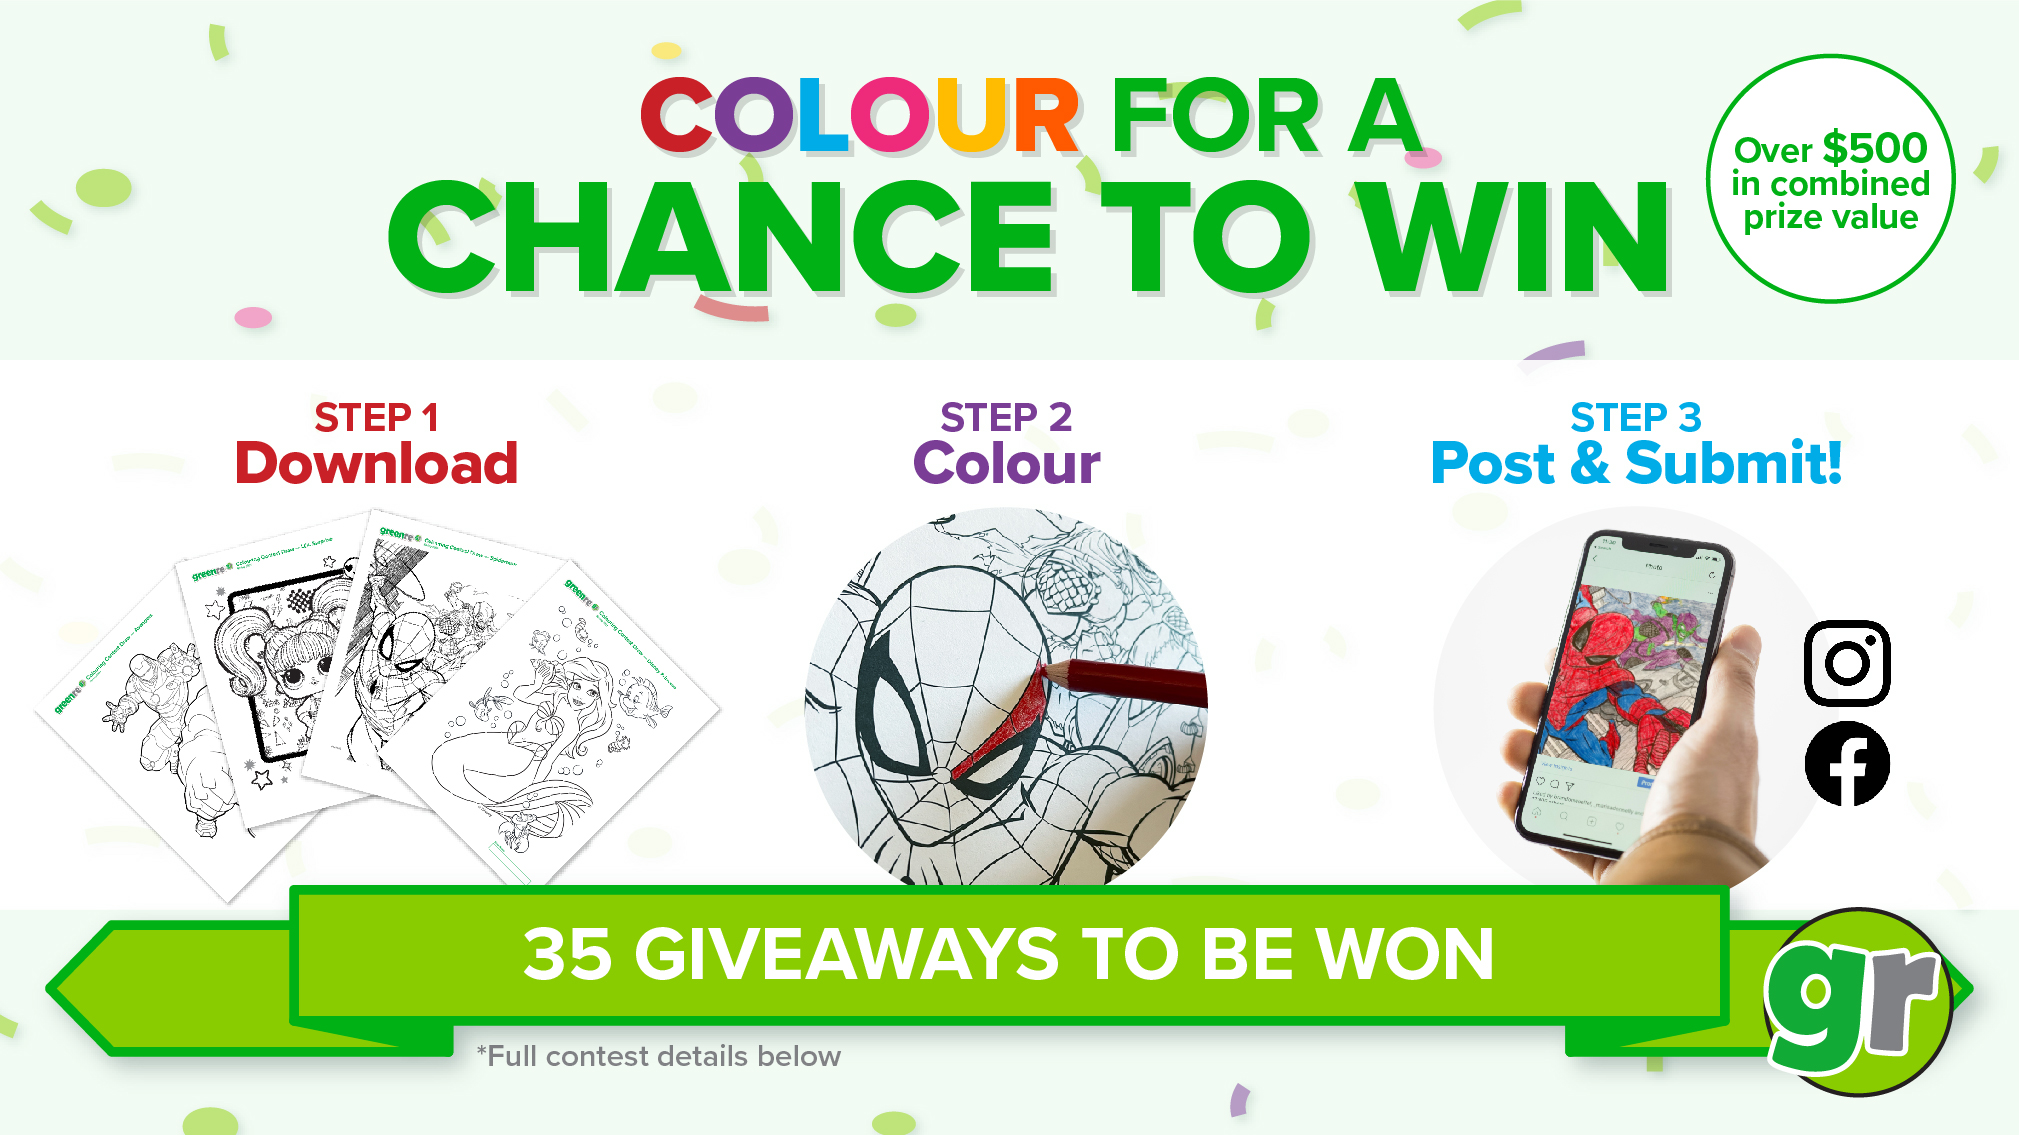 """Colour for a chance to win. Over $500 in combined prize value. Step 1 Download. Step 2 Colour. Step 3 Post & submit!. 35 Giveaways to be won. Full contest details below."""